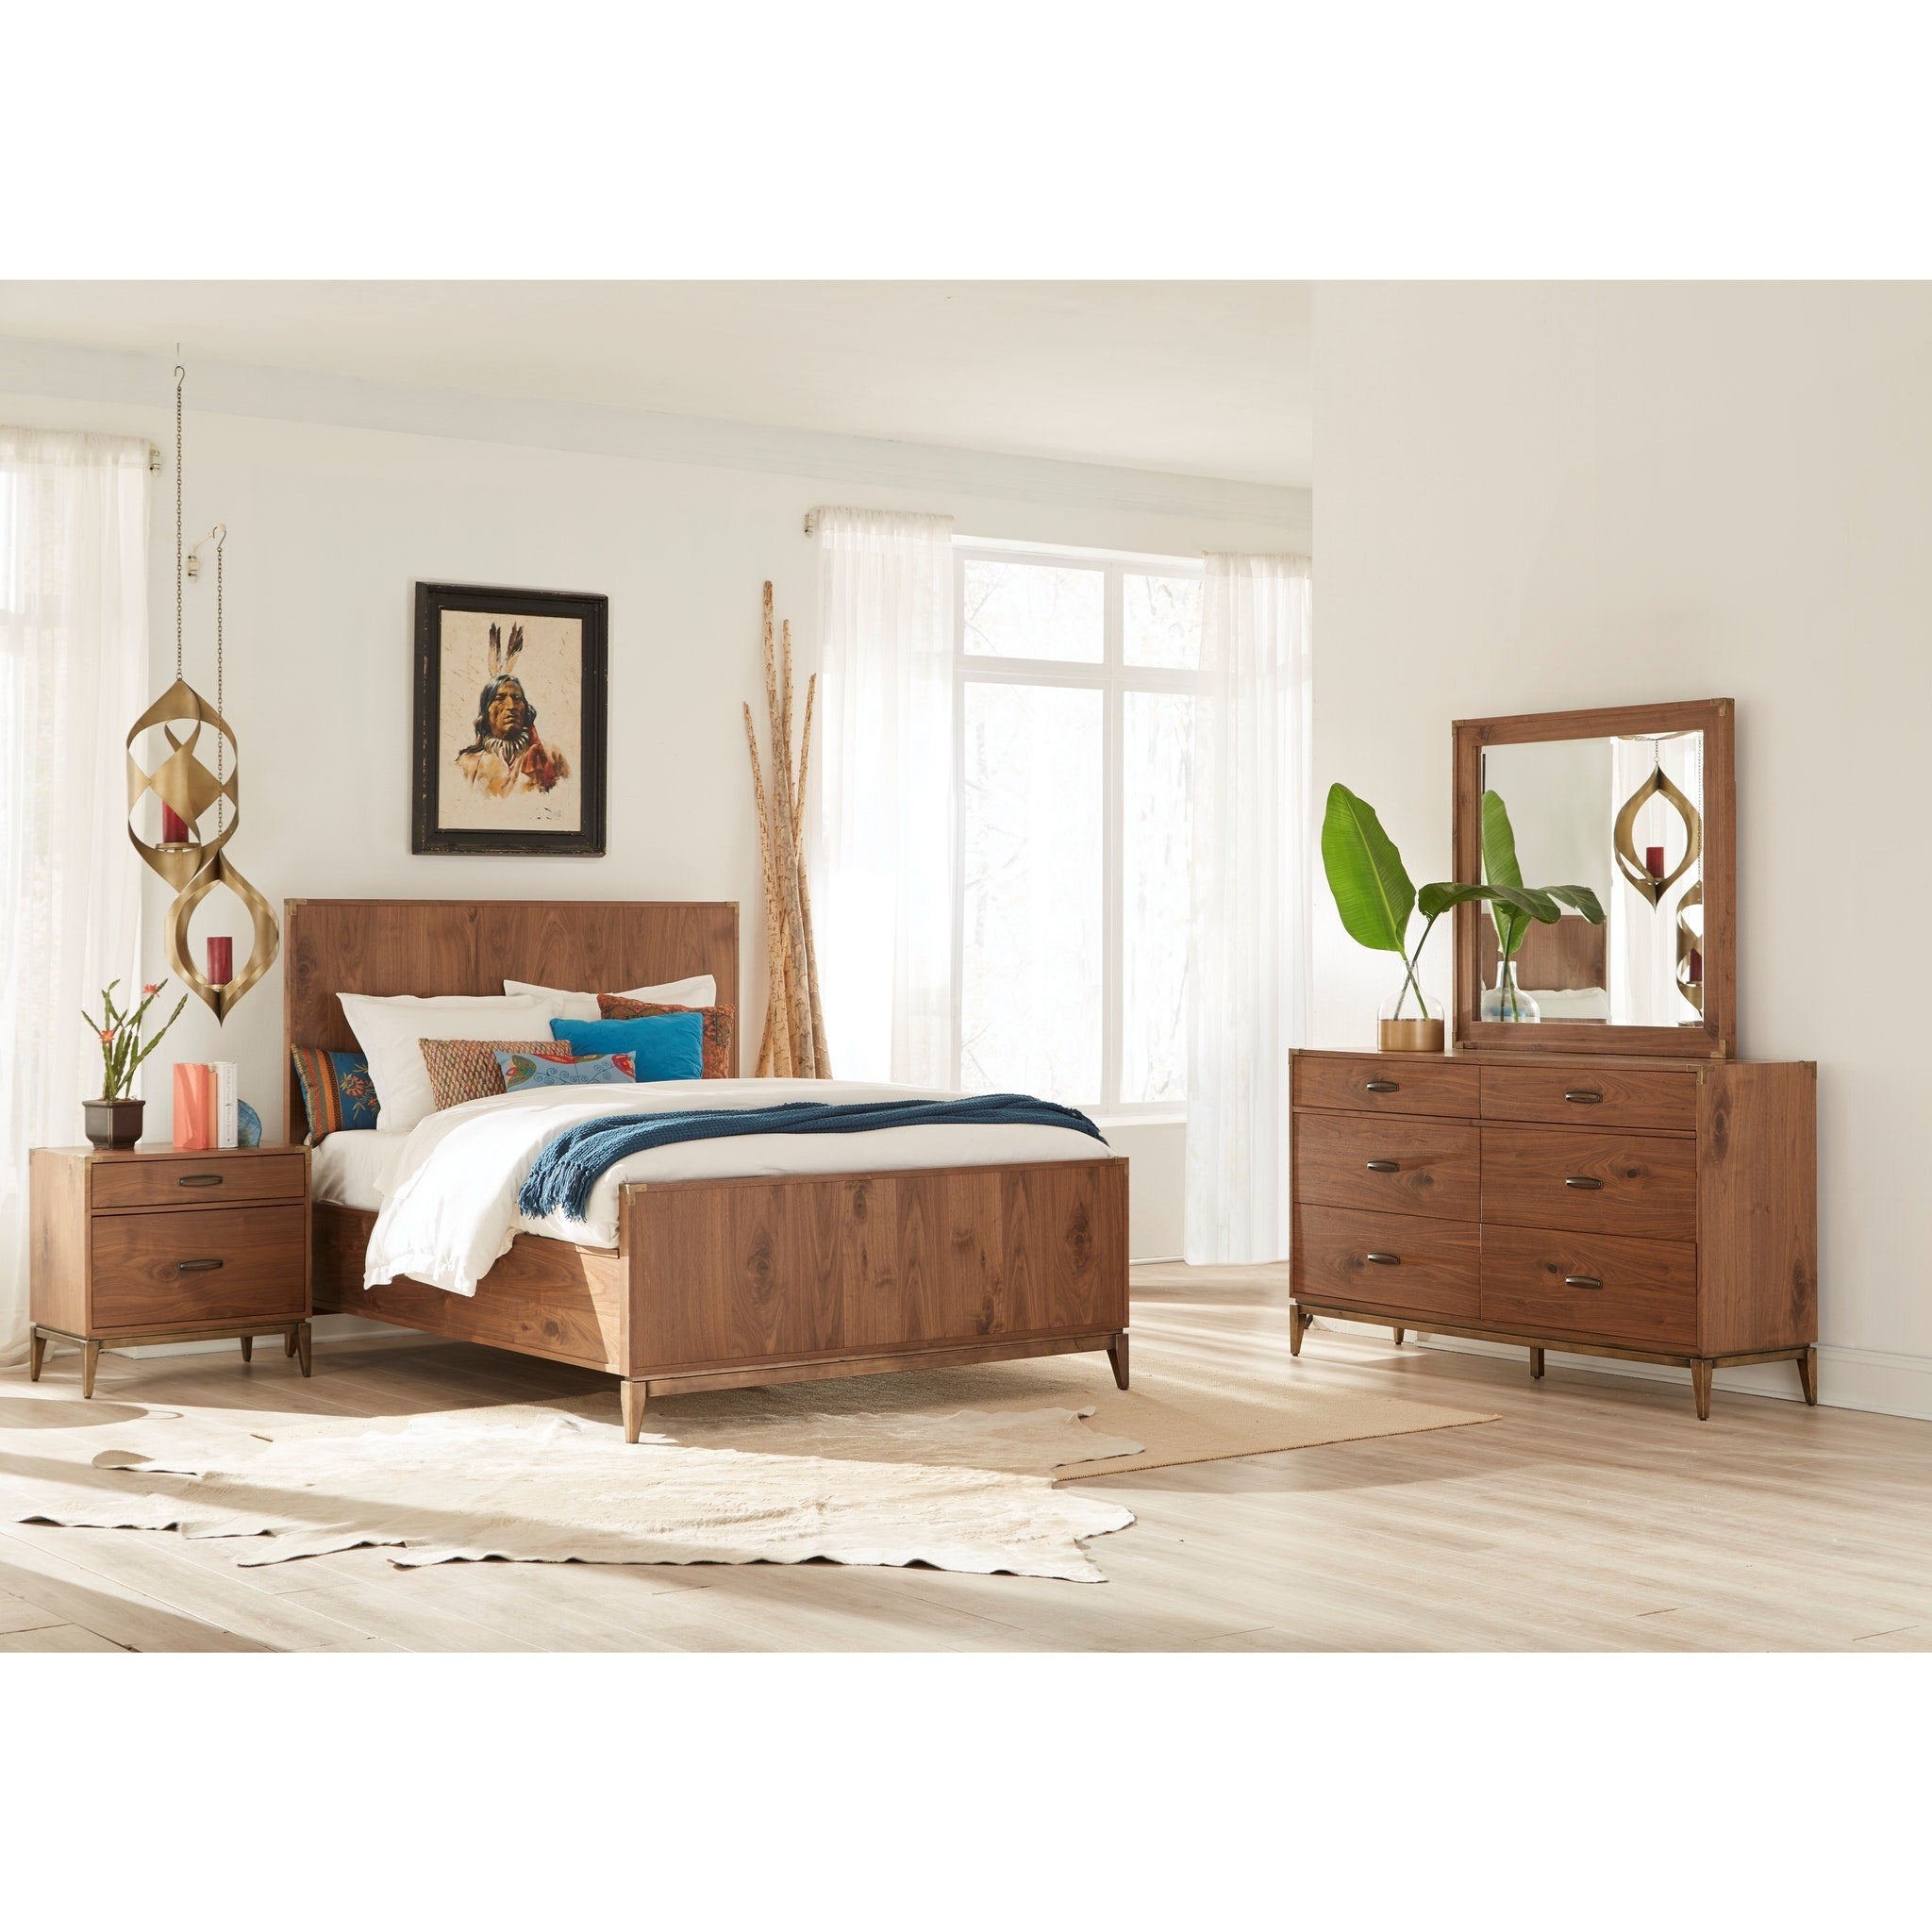 Adler California King-size Panel Bed in Natural Walnut